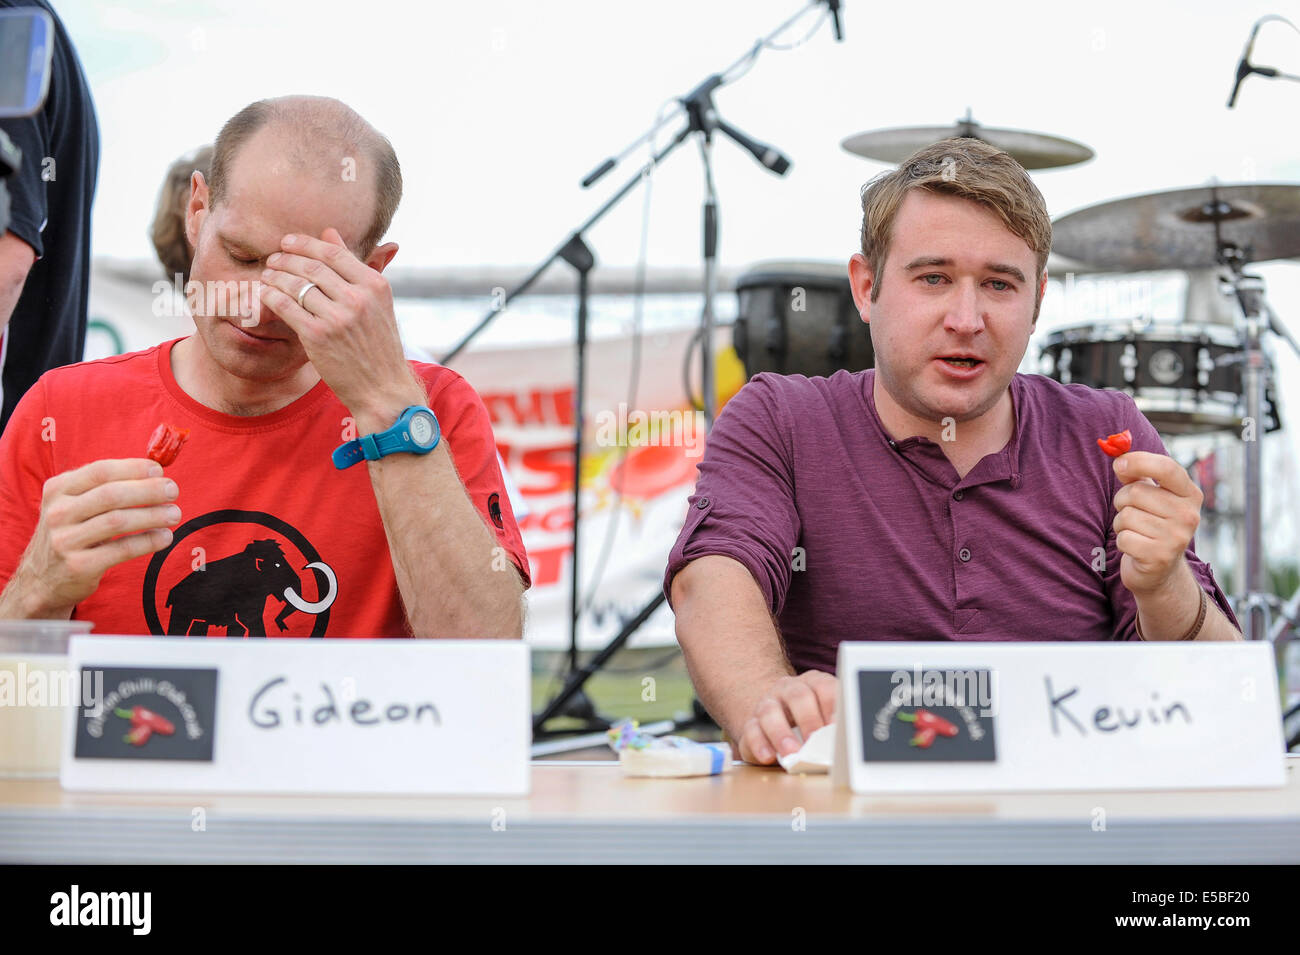 Bushey, Hertfordshire, UK, 27 July 2014 - The Awesome Hertfordshire Chilli Fiesta 2014 attracted chilli loving visitors. - Stock Image